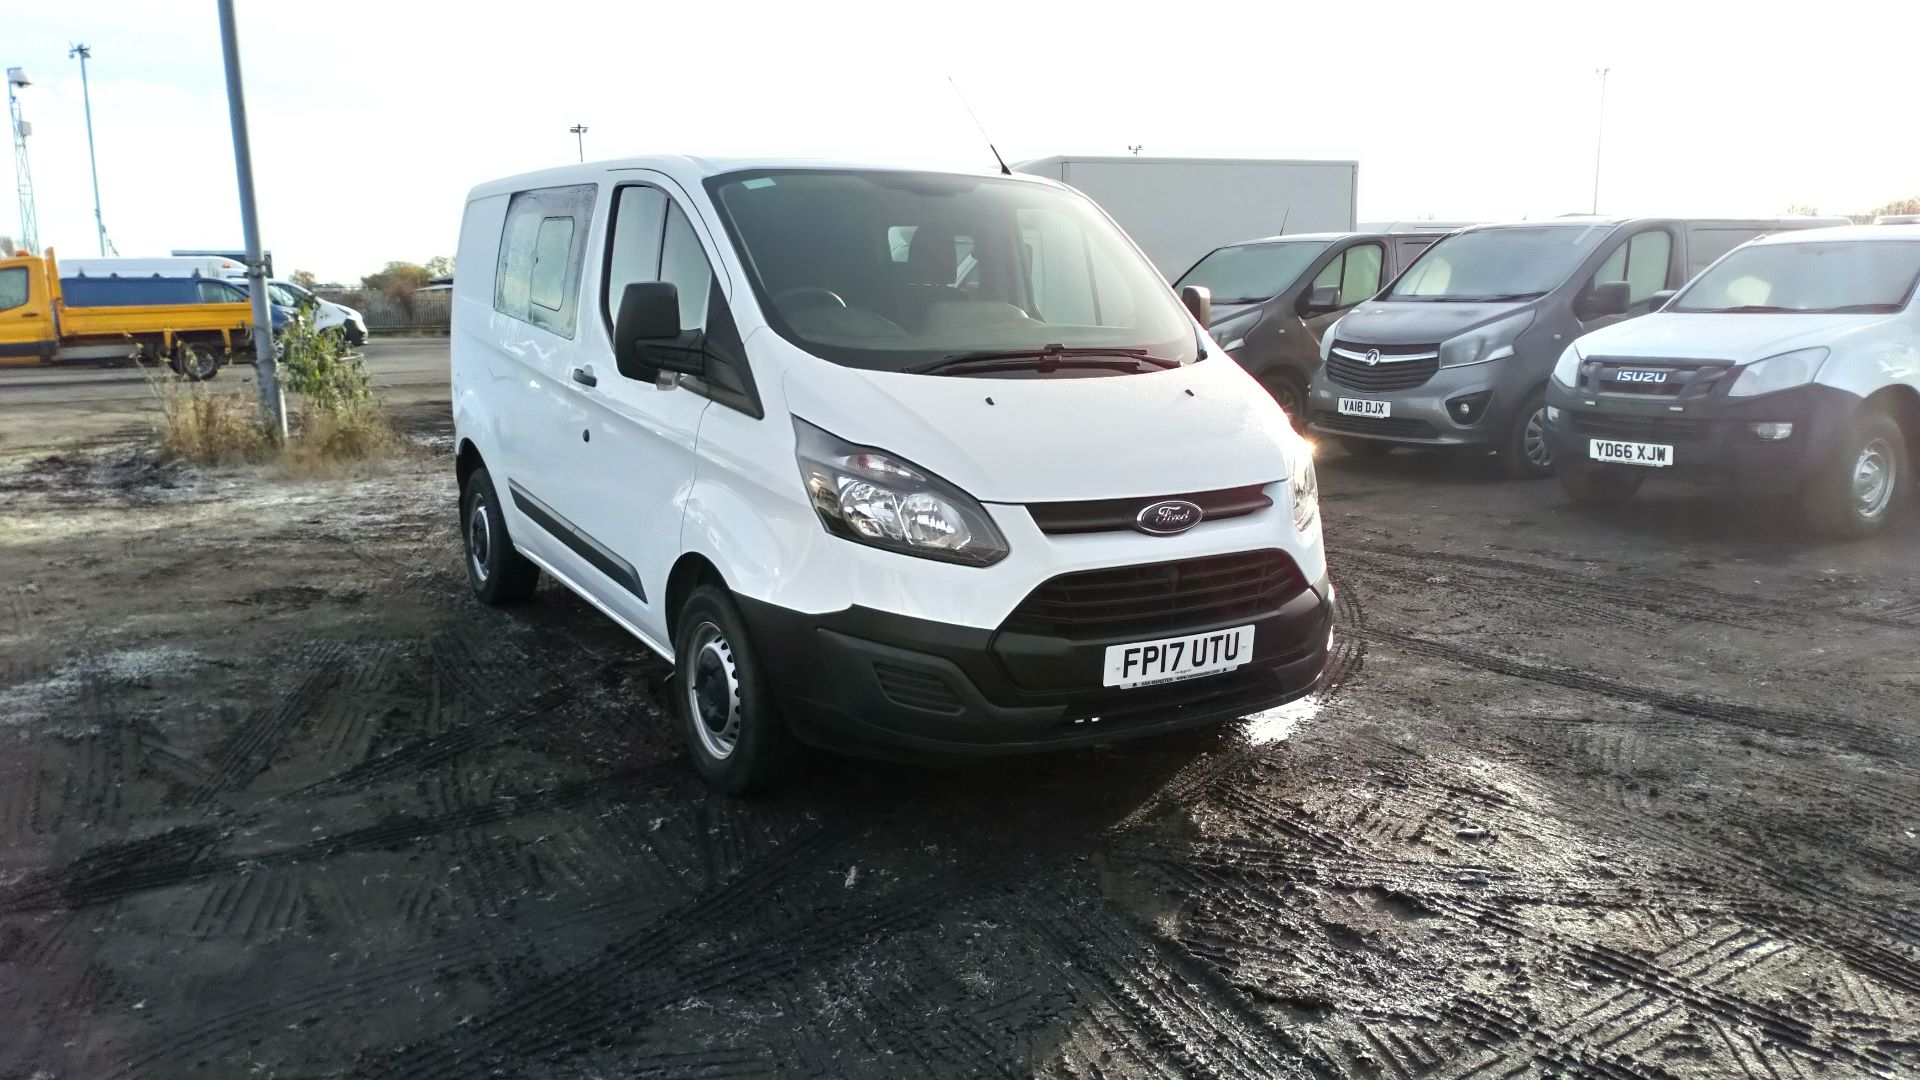 2017 Ford Transit Custom 2.0 Tdci 105Ps Low Roof D/Cab Van (FP17UTU)